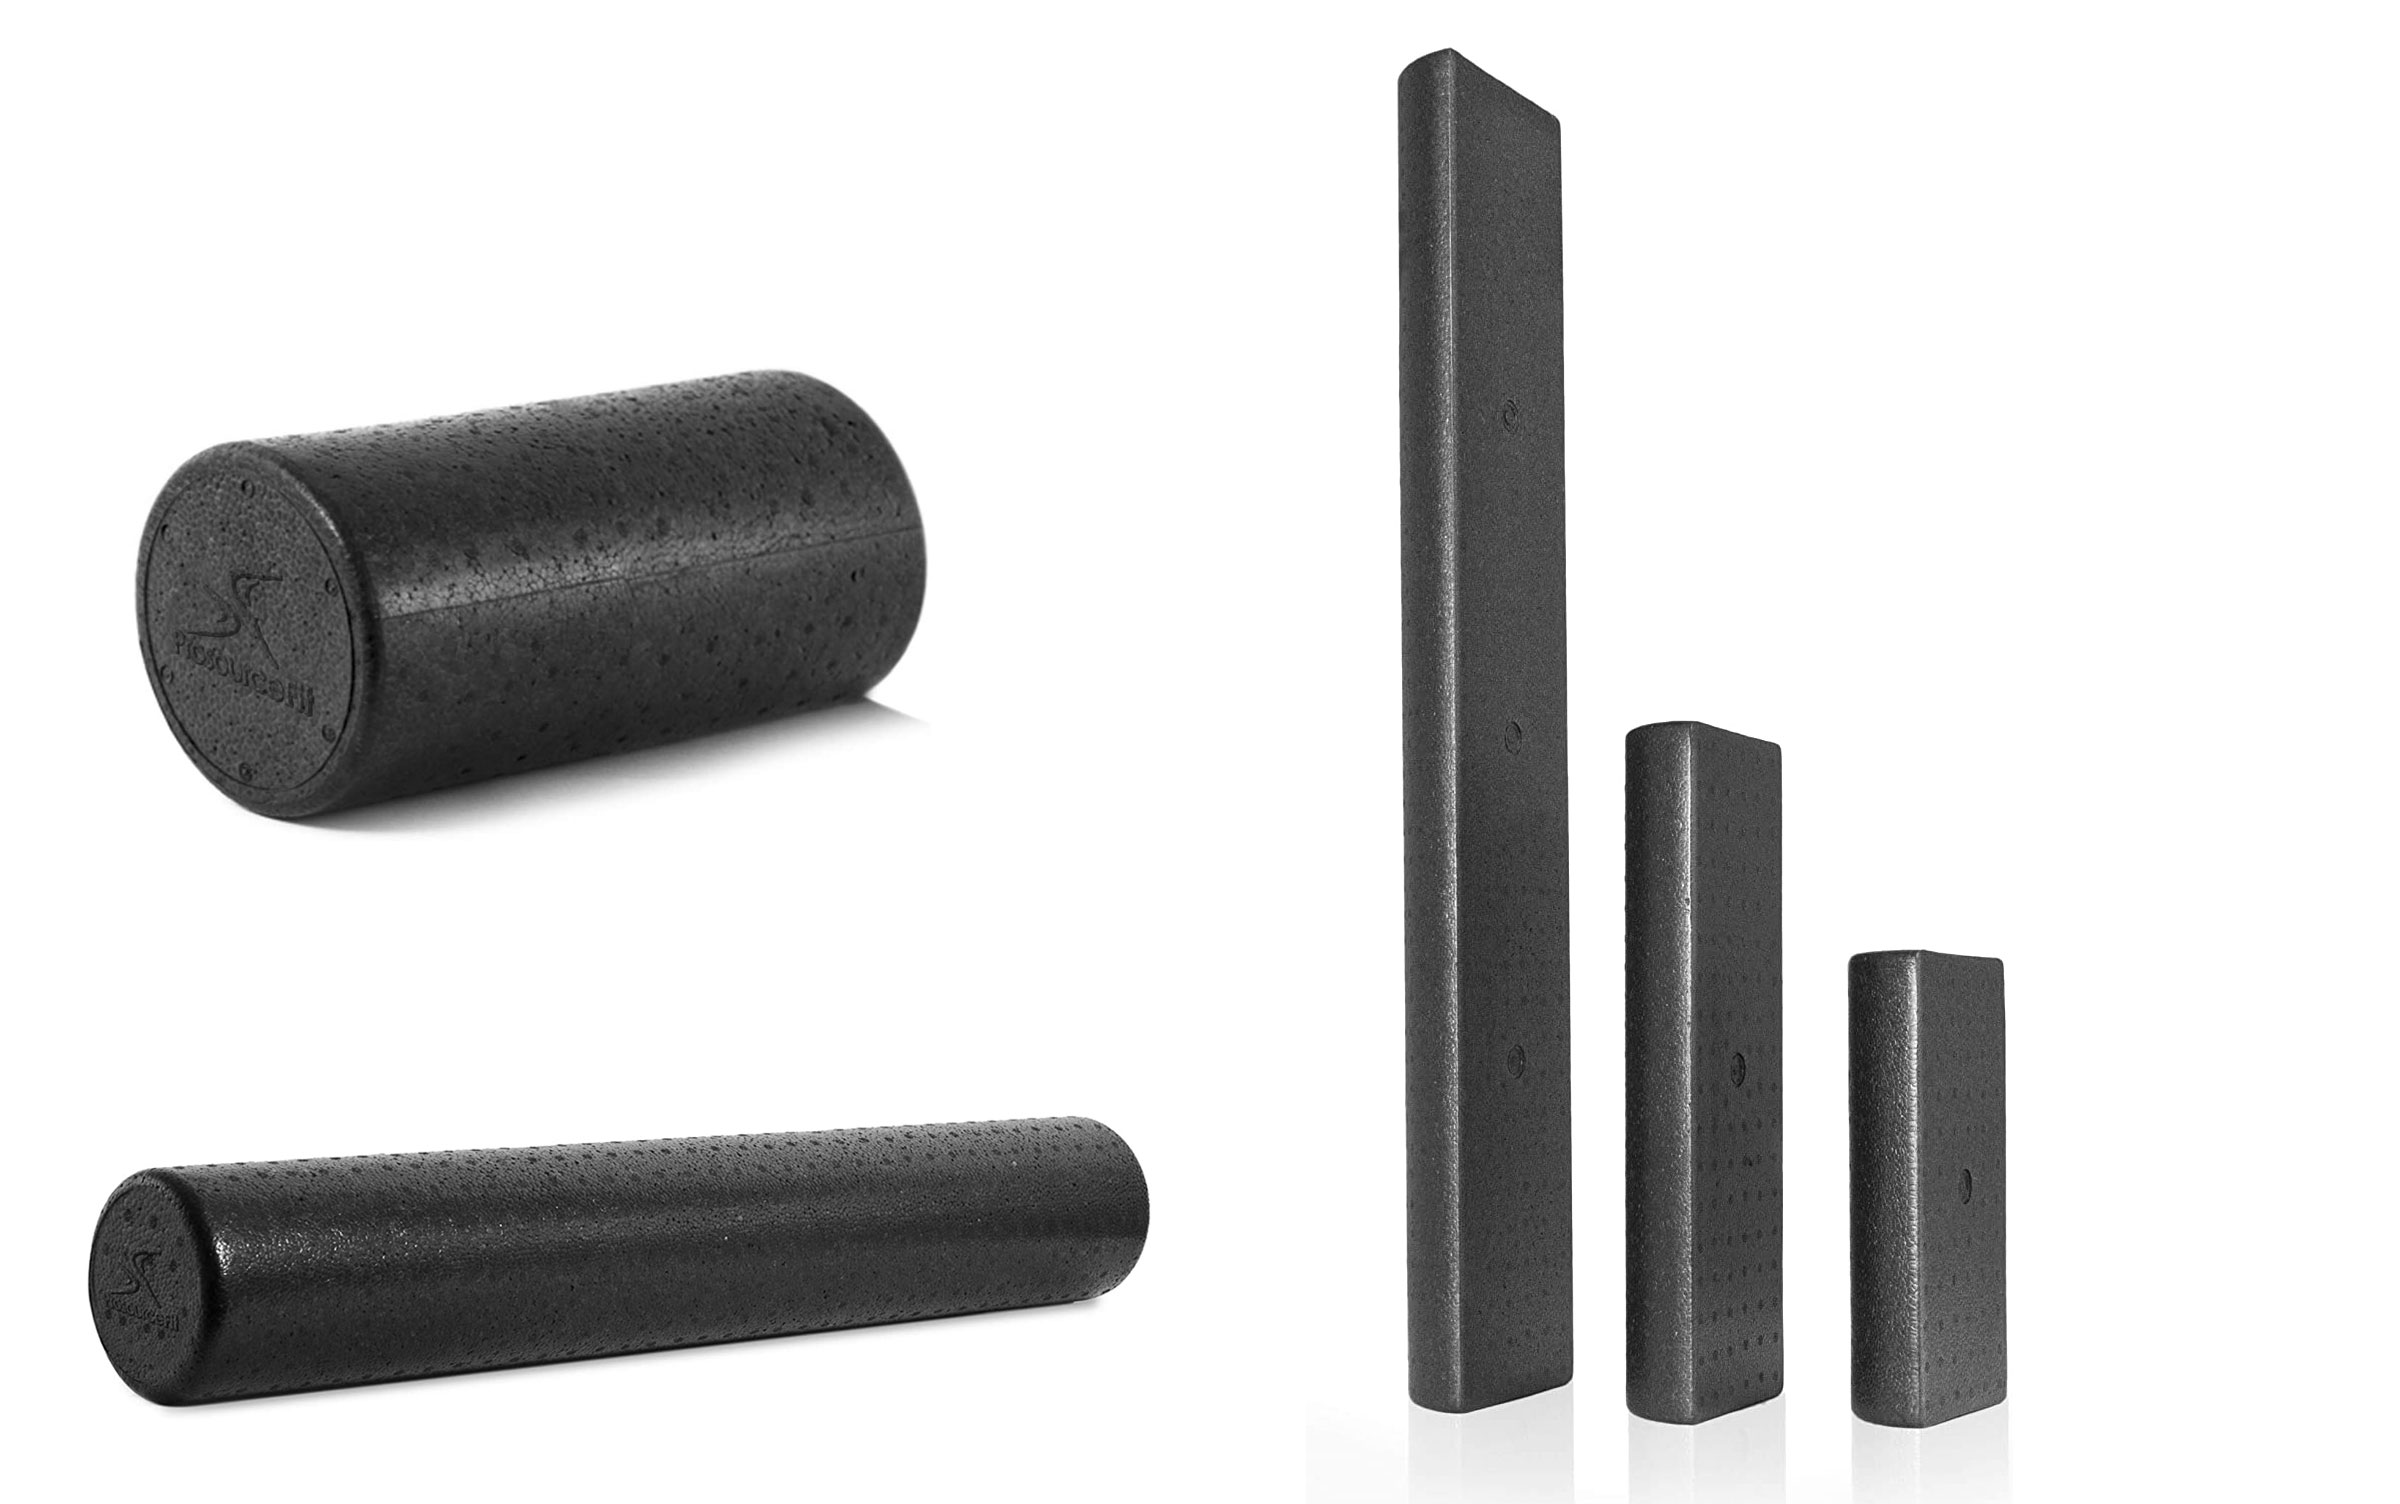 ProsourceFit High-Density Full and Half-Round Foam Rollers